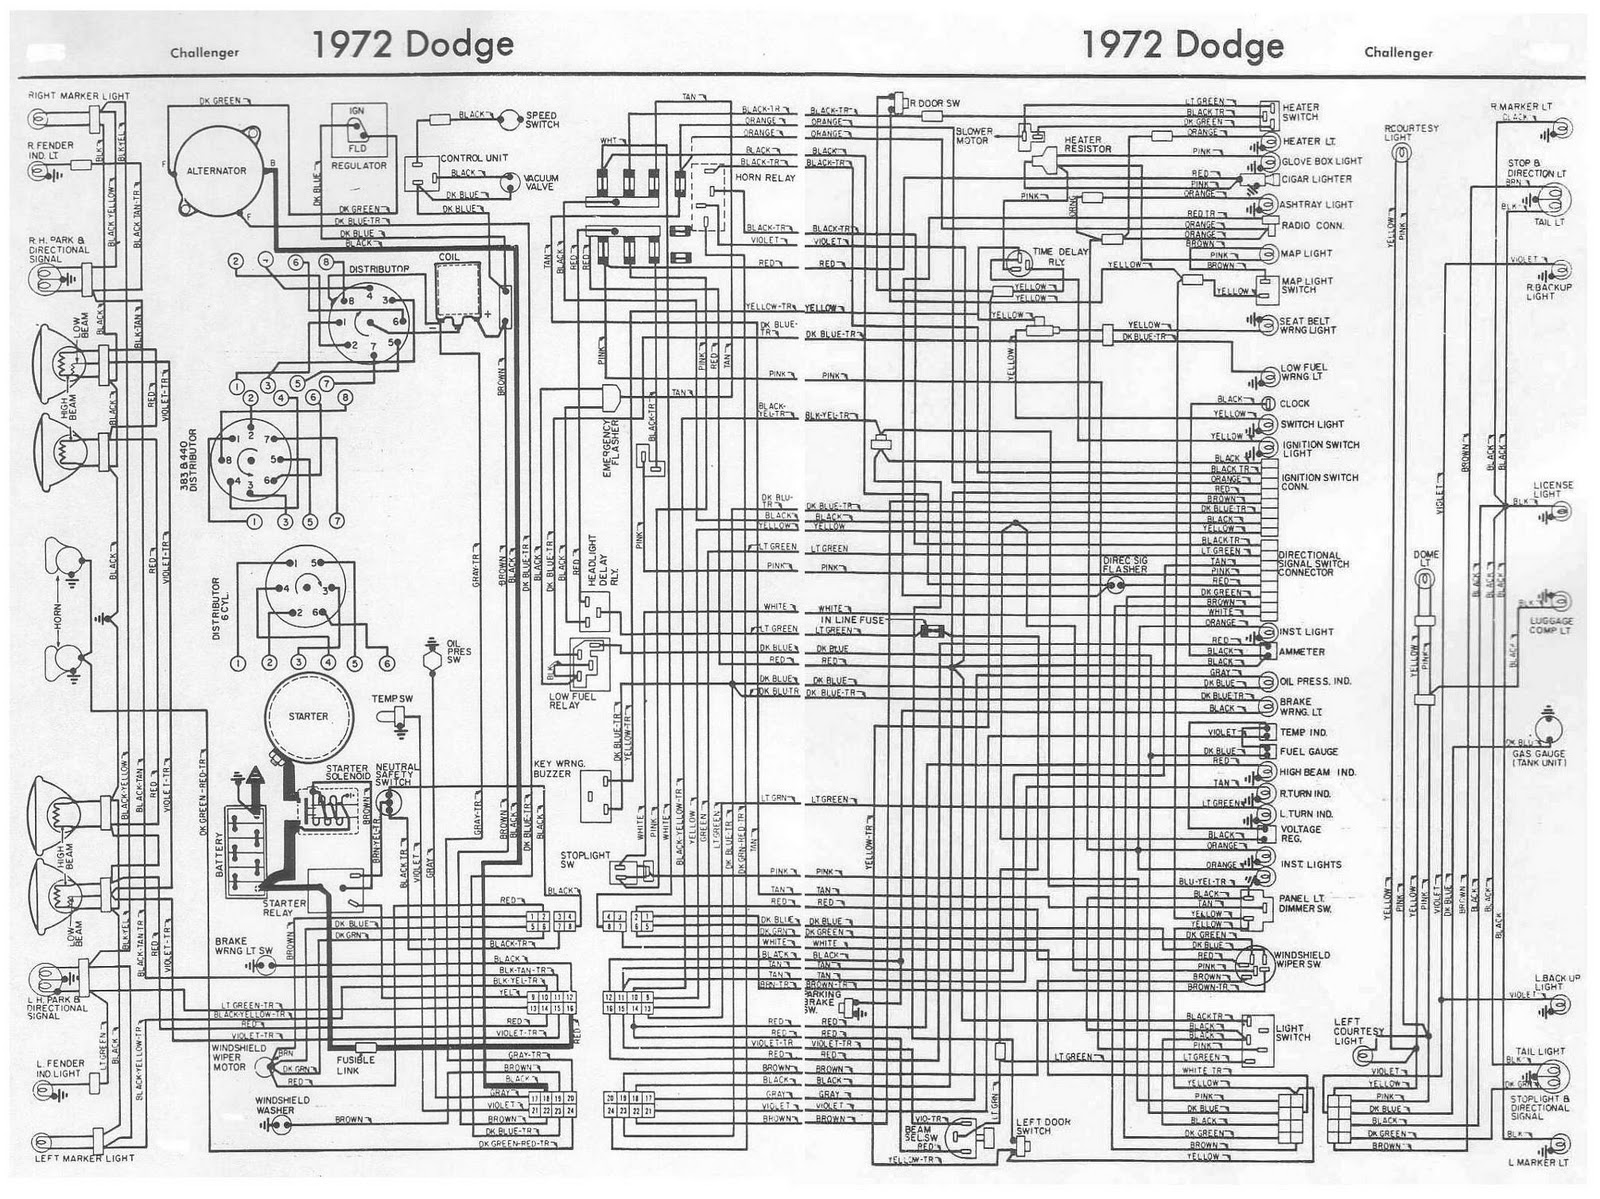 Dodge+Challenger+1972+Complete+Wiring+Diagram dodge challenger 1972 complete wiring diagram all about wiring 1967 dodge charger wiring diagram at mifinder.co